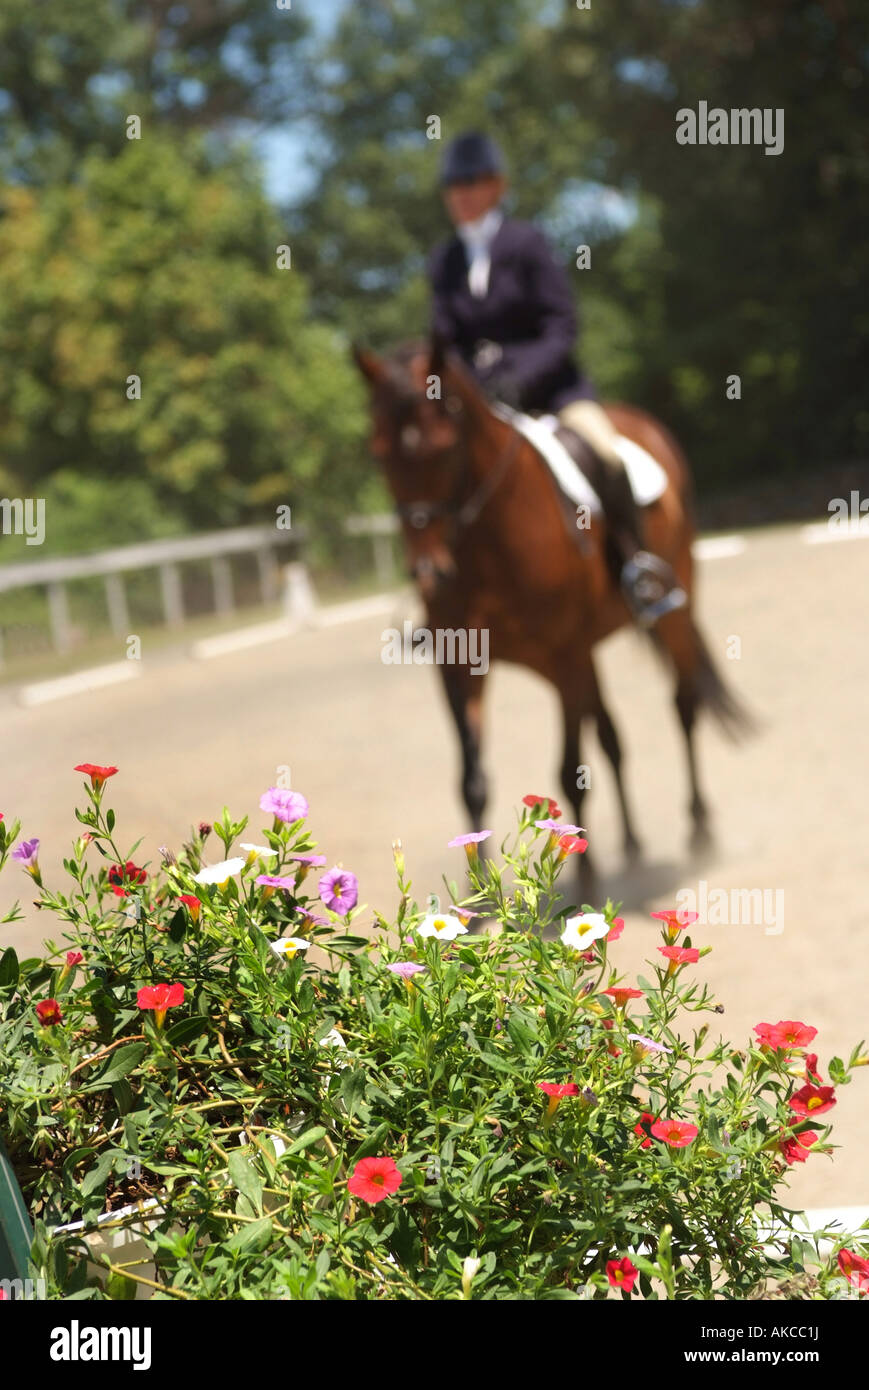 An equestrian dressage competition at Glenwood Park Middleburg - Stock Image